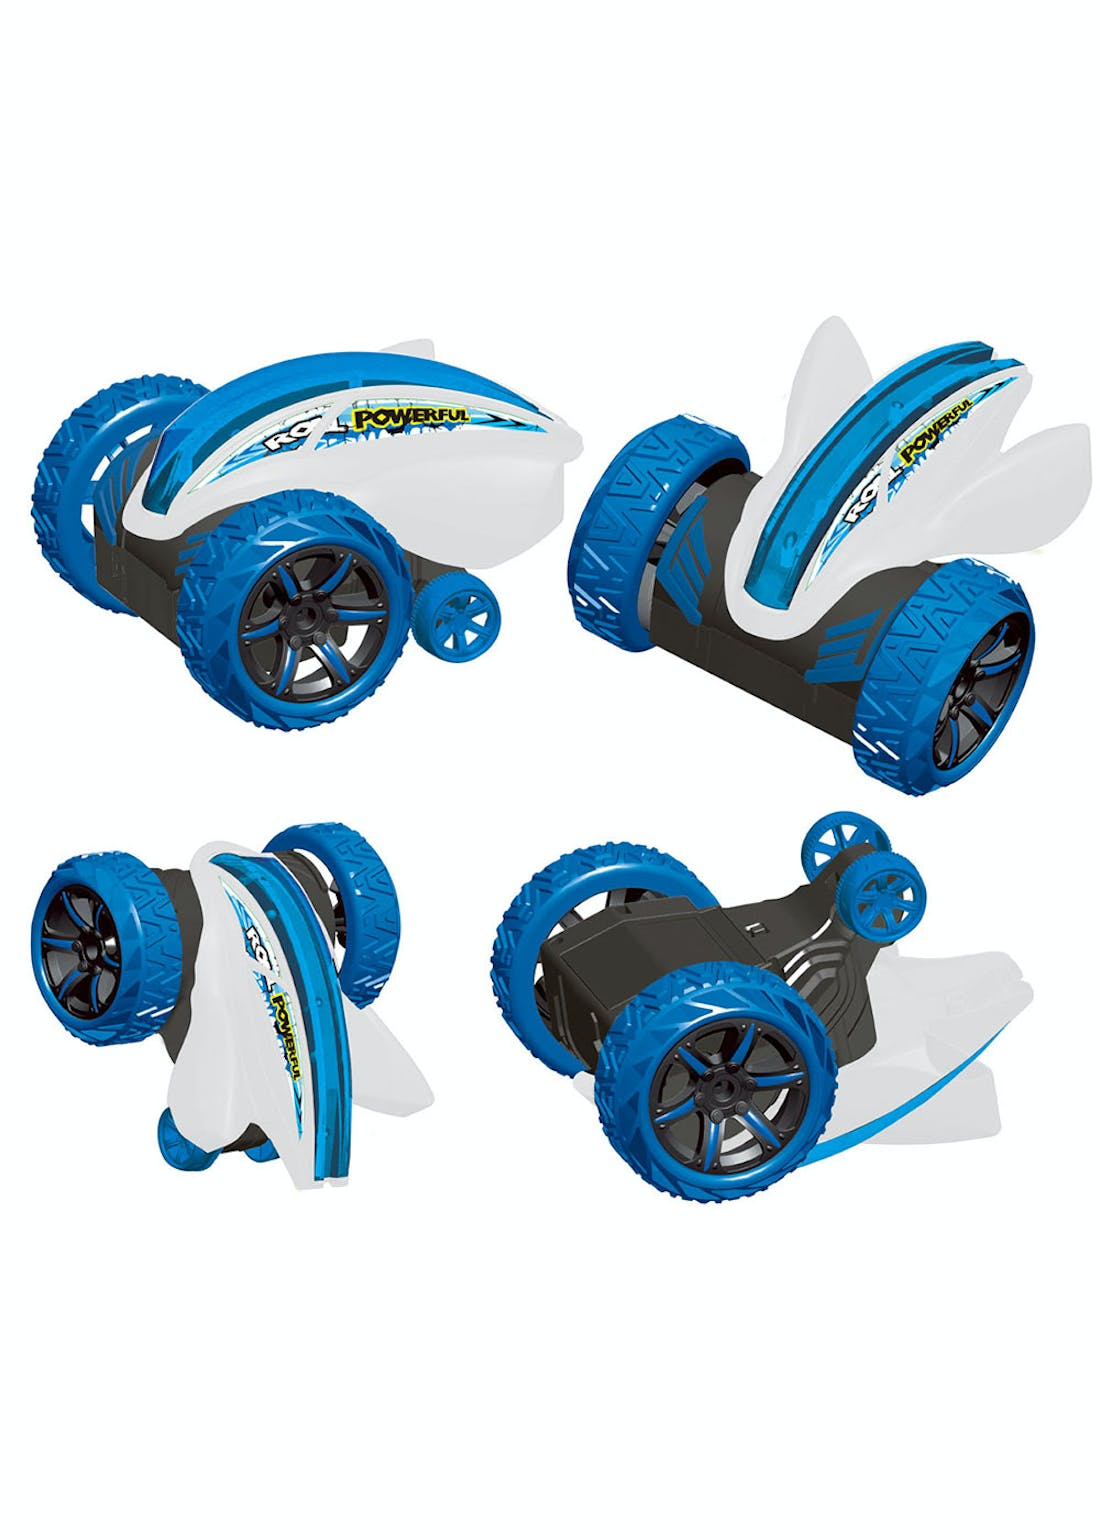 Remote Control Super Racing Car (36cm x 21.5cm x 17cm)